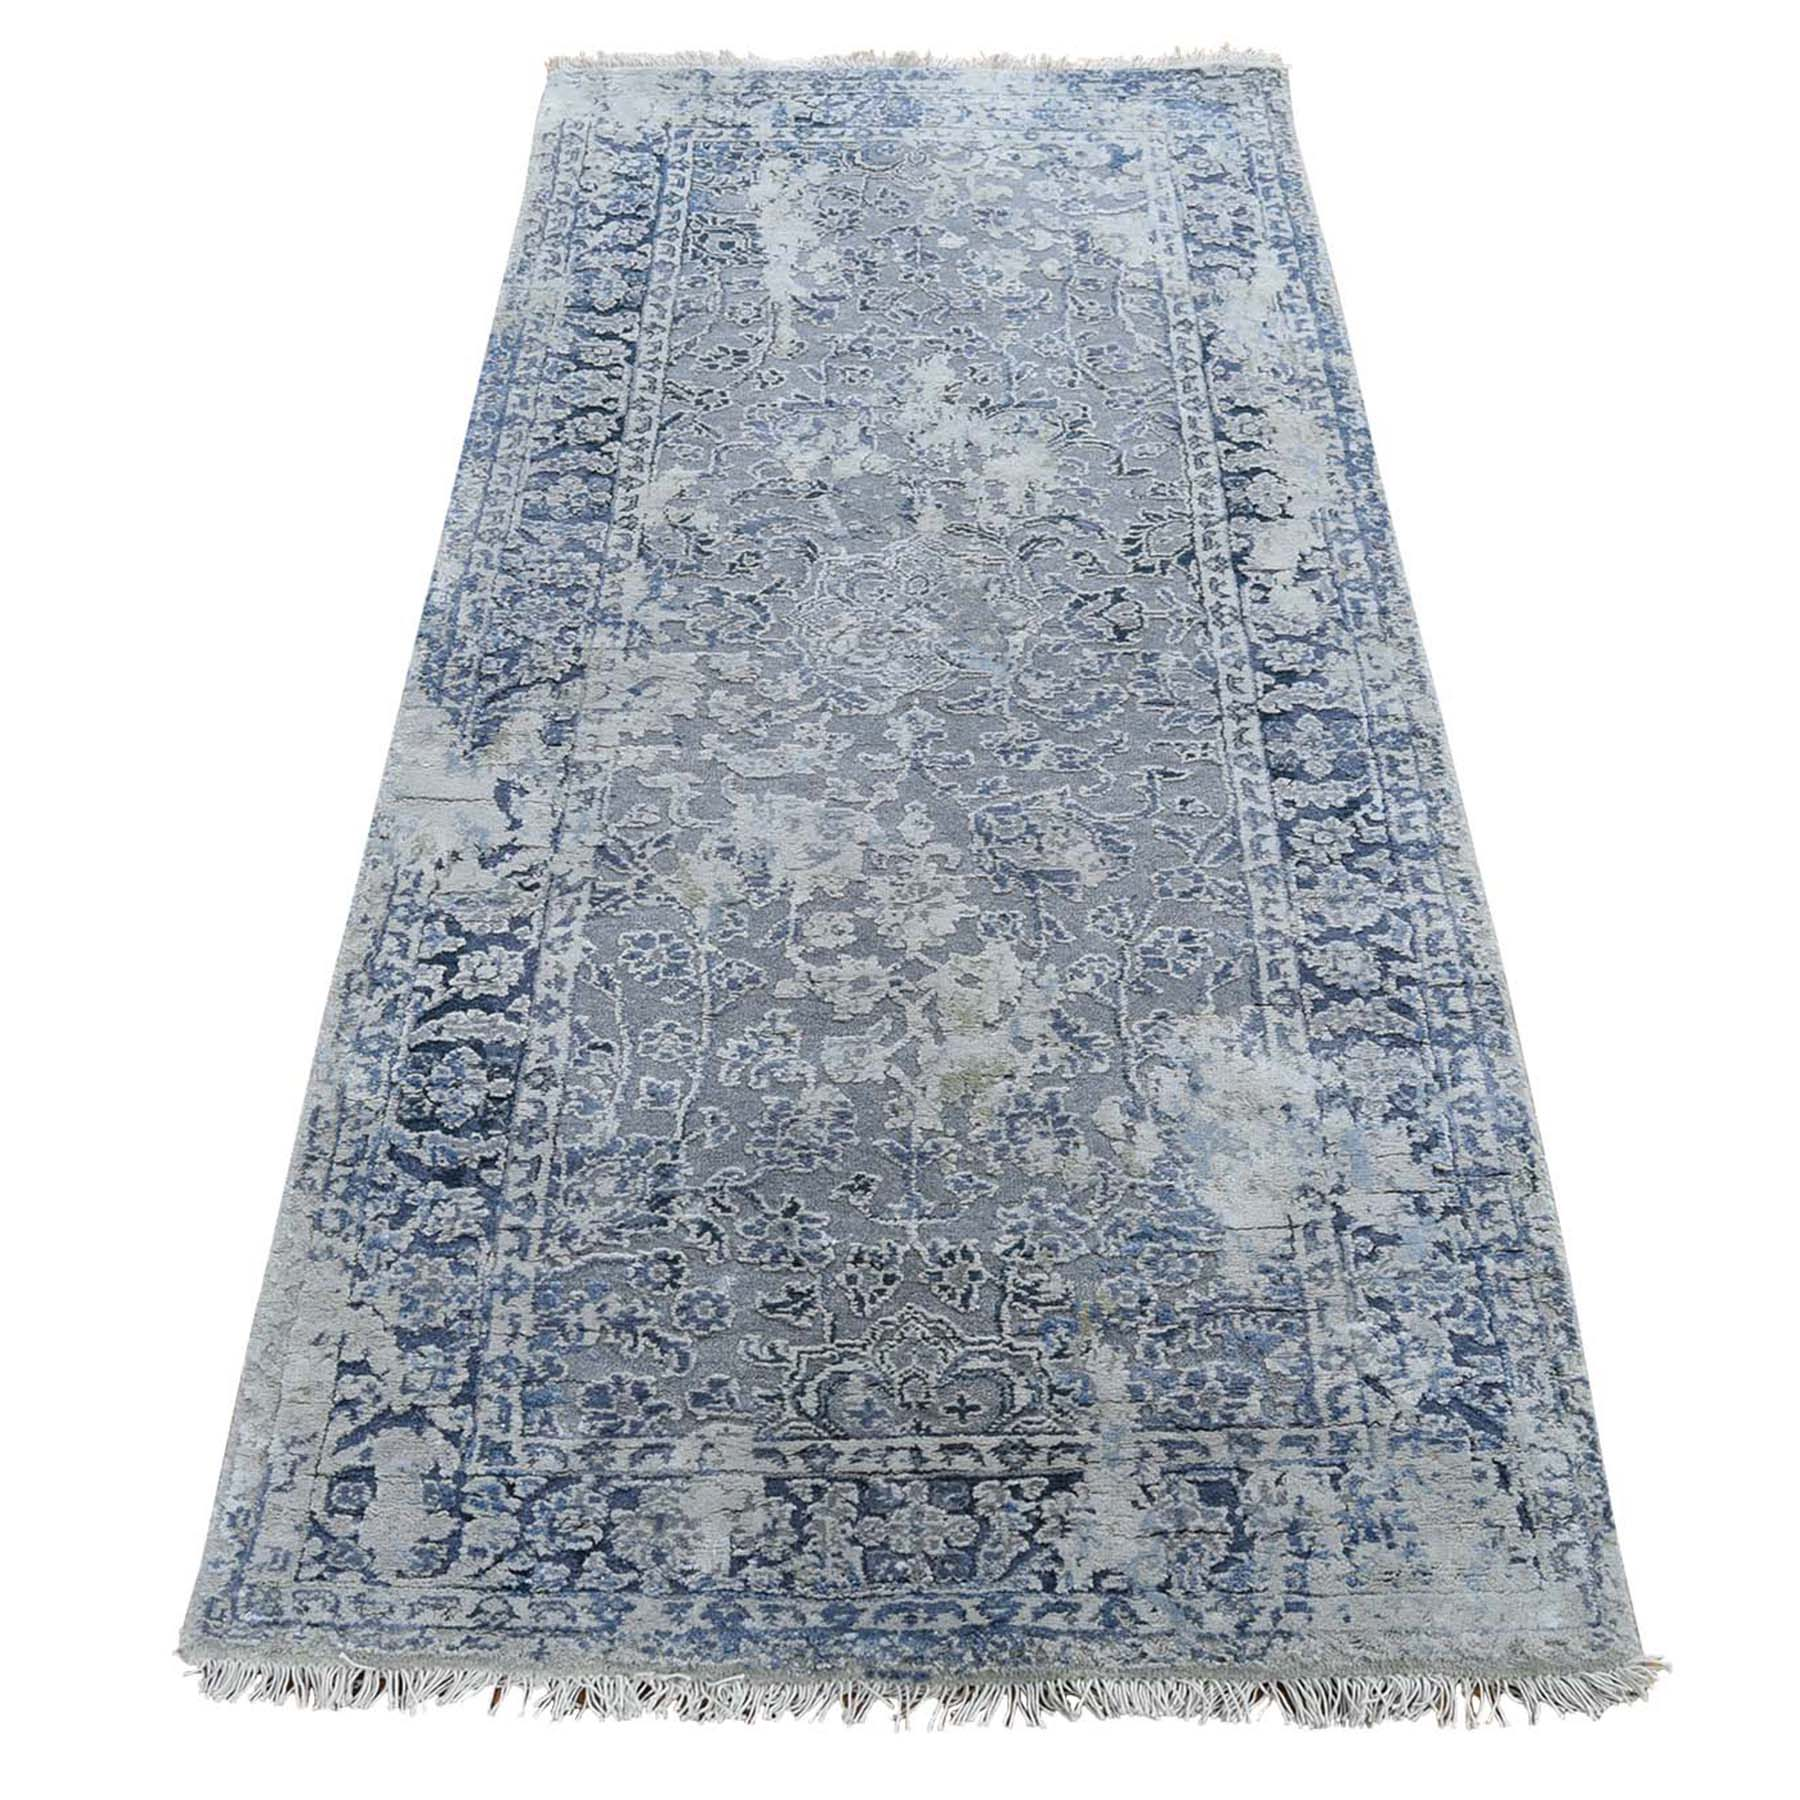 "2'6""X6' Broken Persian Erased Design With Pure Silk Runner Hand-Knotted Oriental Rug moad6cbe"